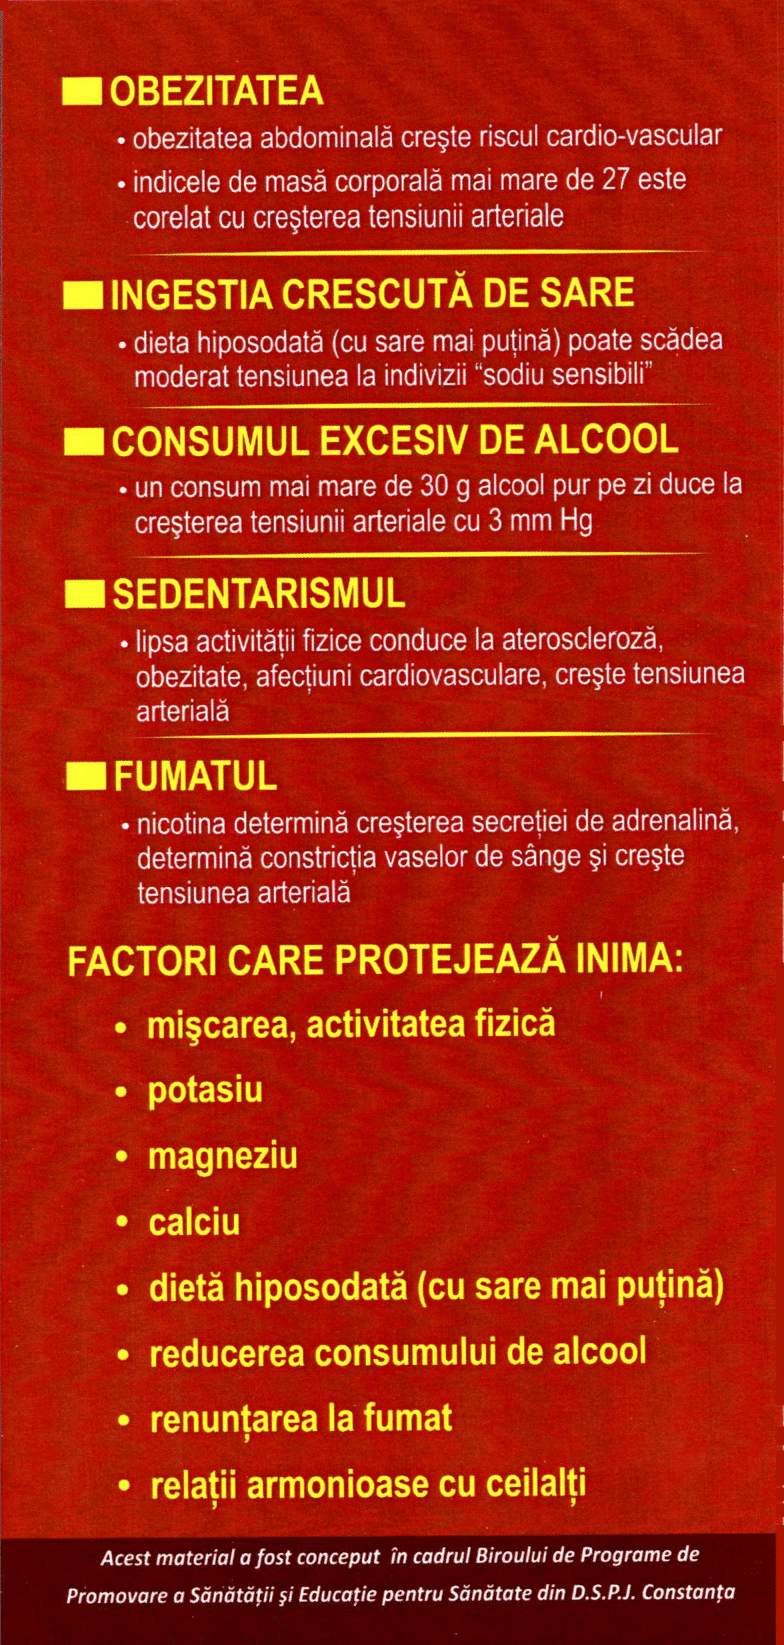 http://www.medstar2000.ro/wp-content/uploads/2019/02/FACTORI-CARE-PROTEJEAZA-INIMA-1.png